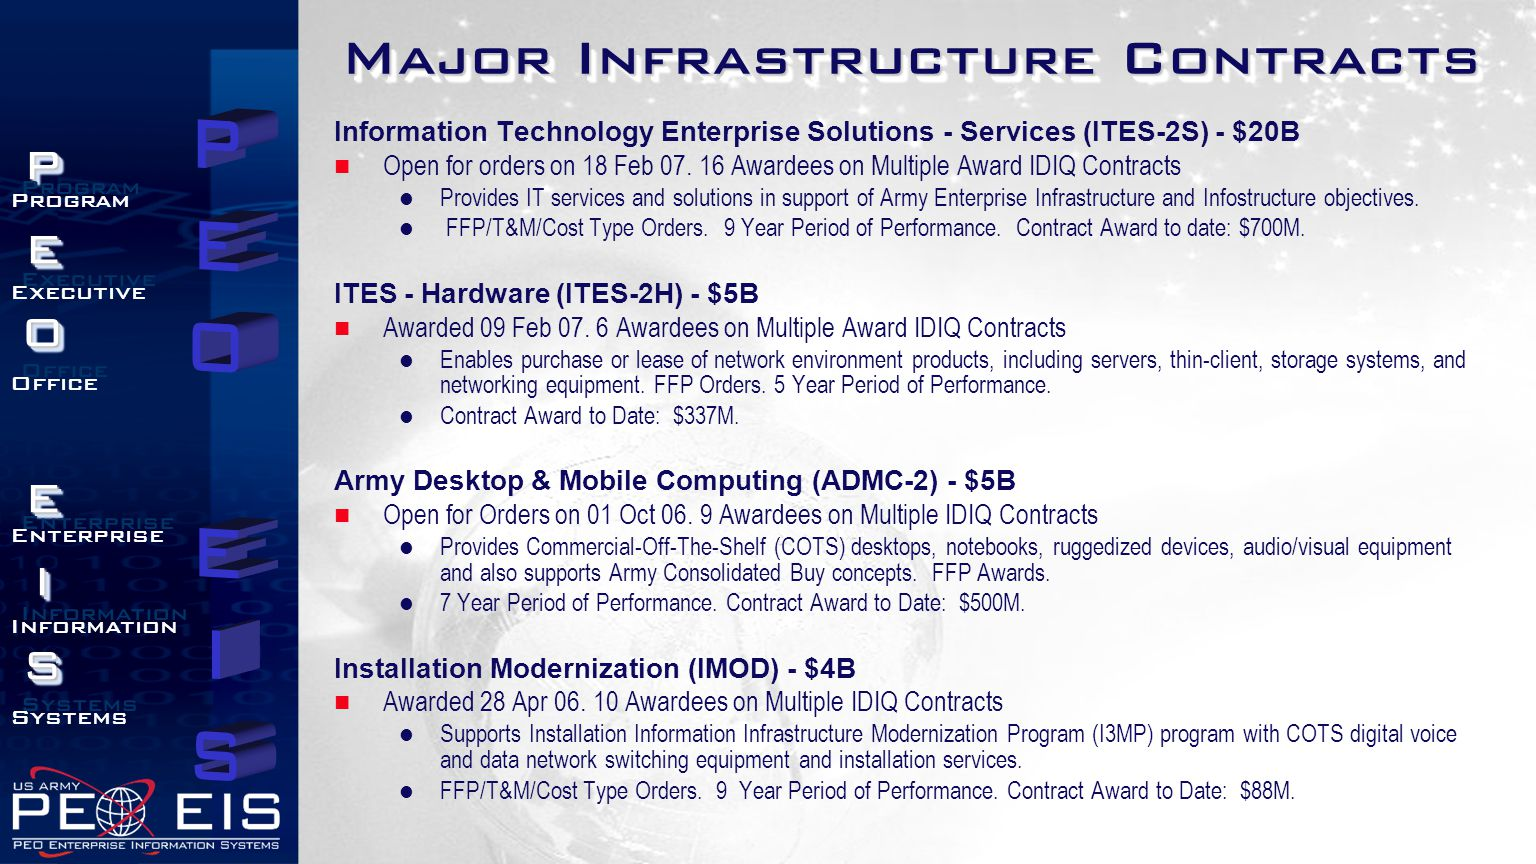 Major Infrastructure Contracts